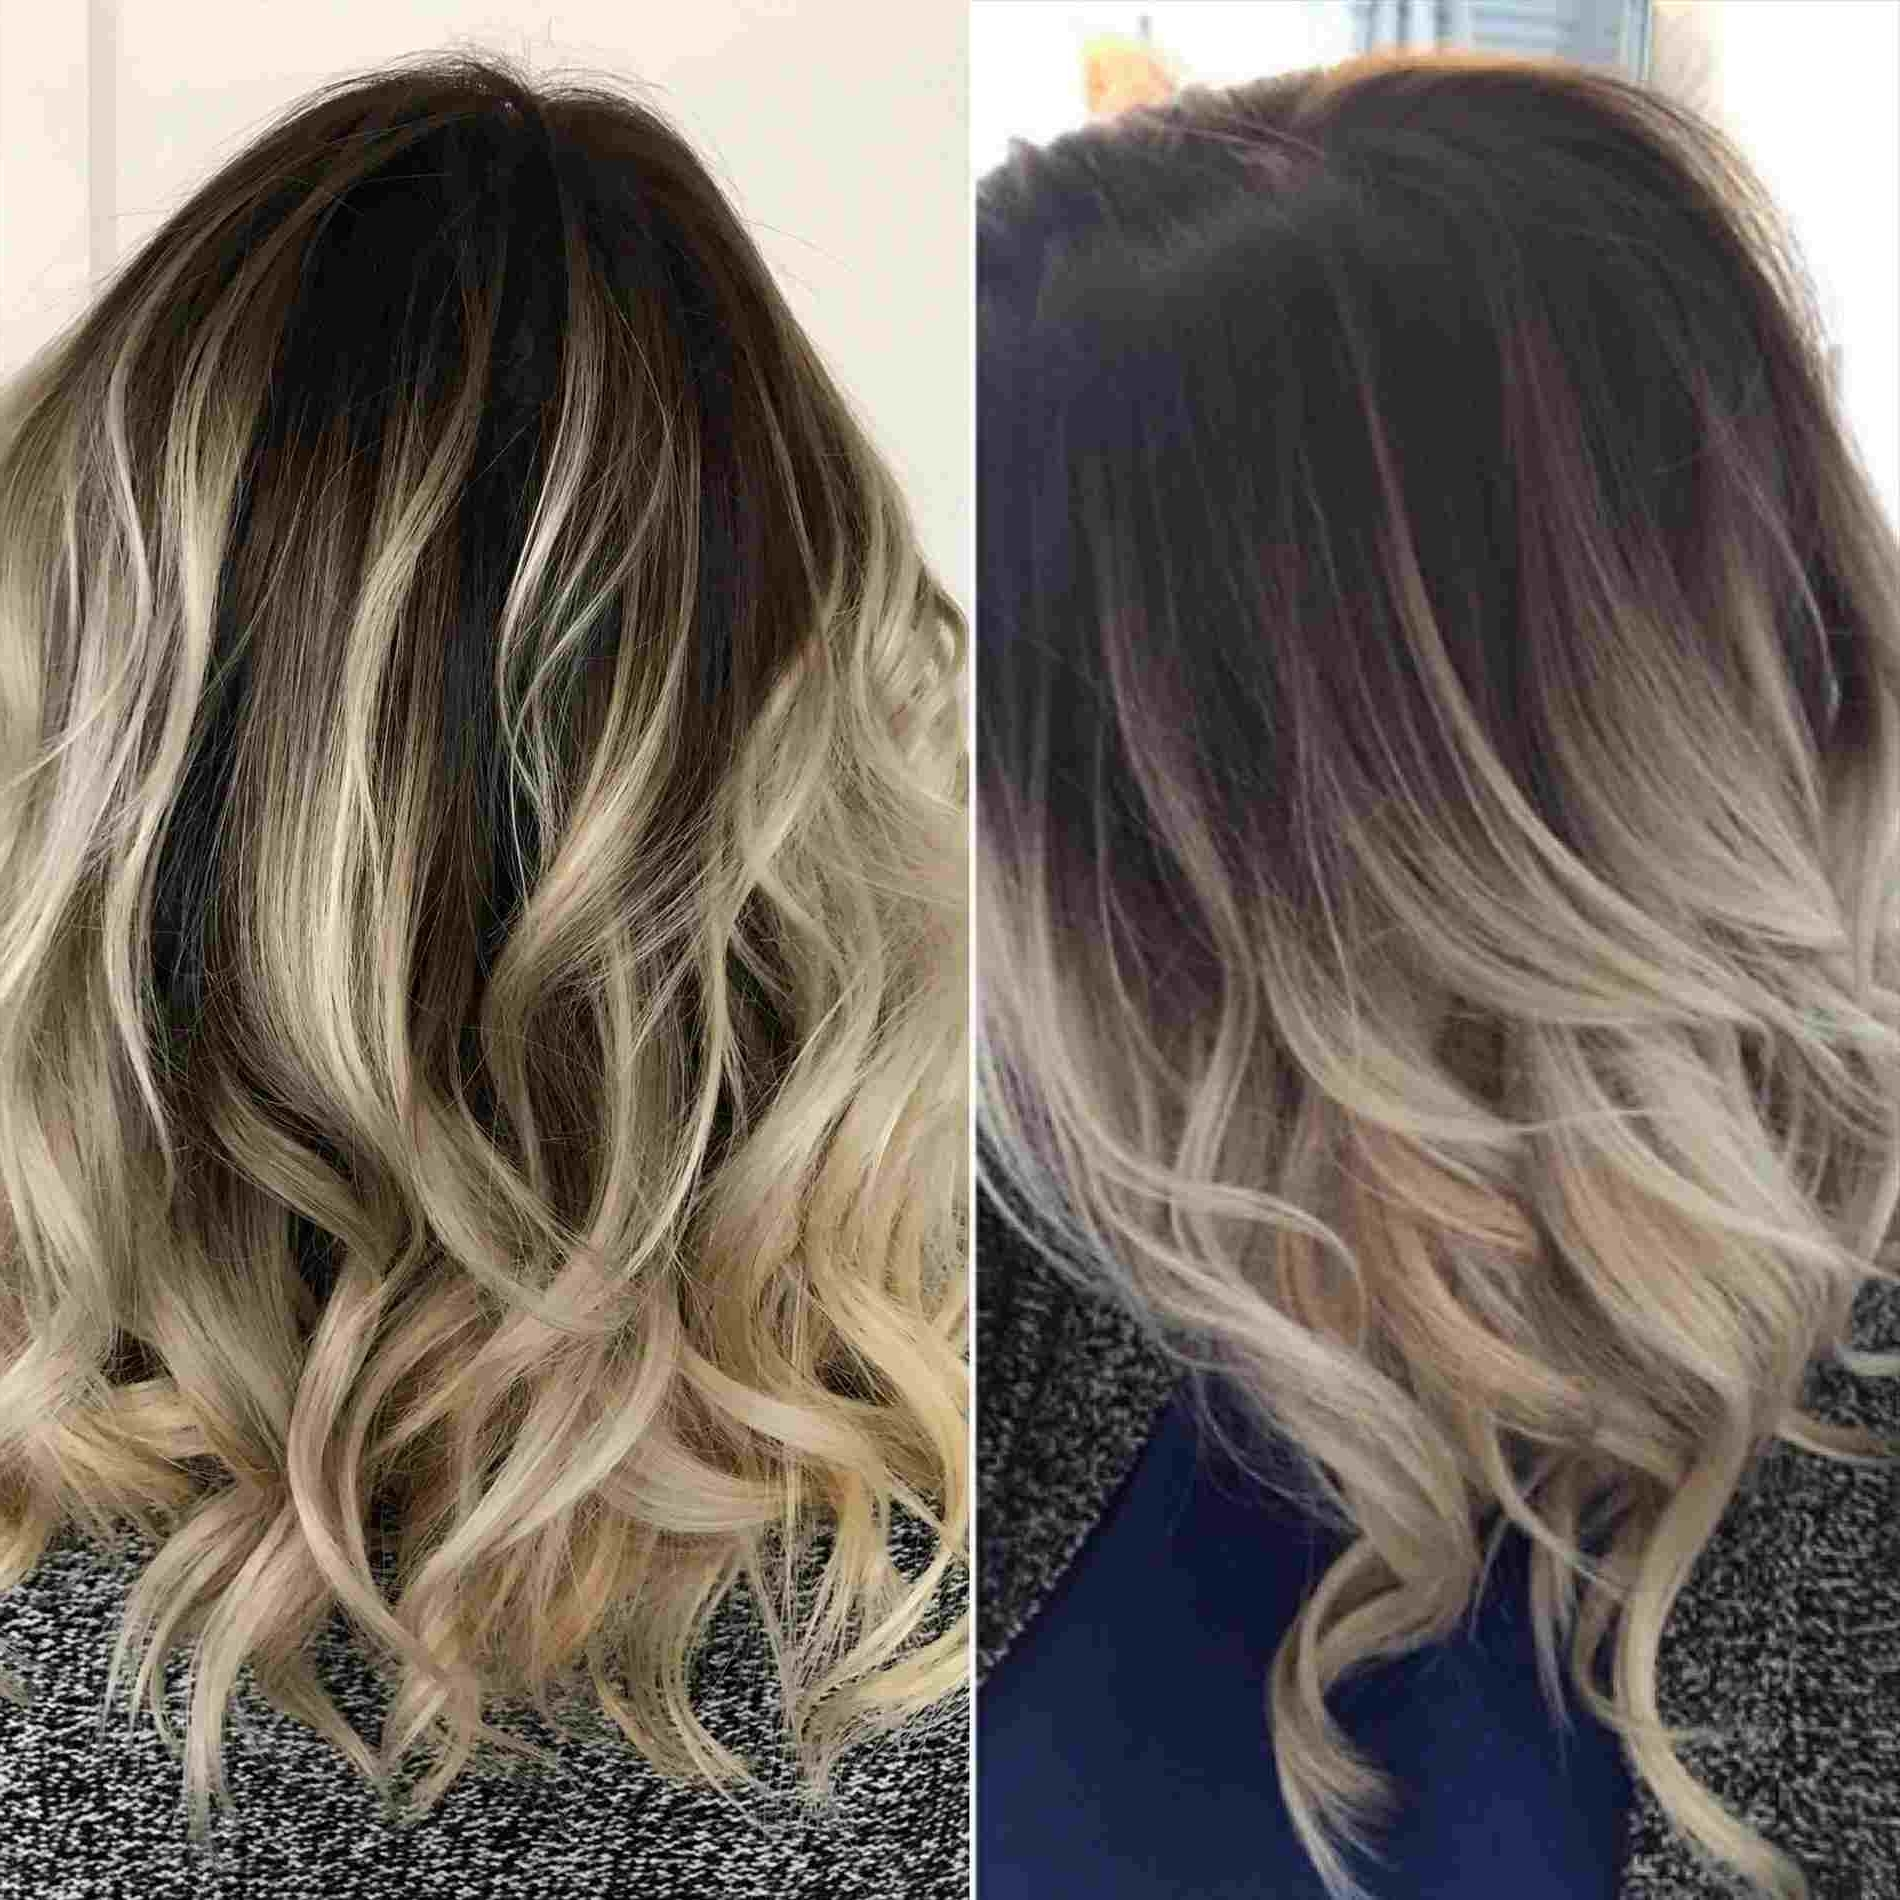 Most Recent Icy Highlights And Loose Curls Blonde Hairstyles Pertaining To And Cool Blonde Hair With Dark Roots Balayage Icy Ashy Highlights (View 15 of 20)